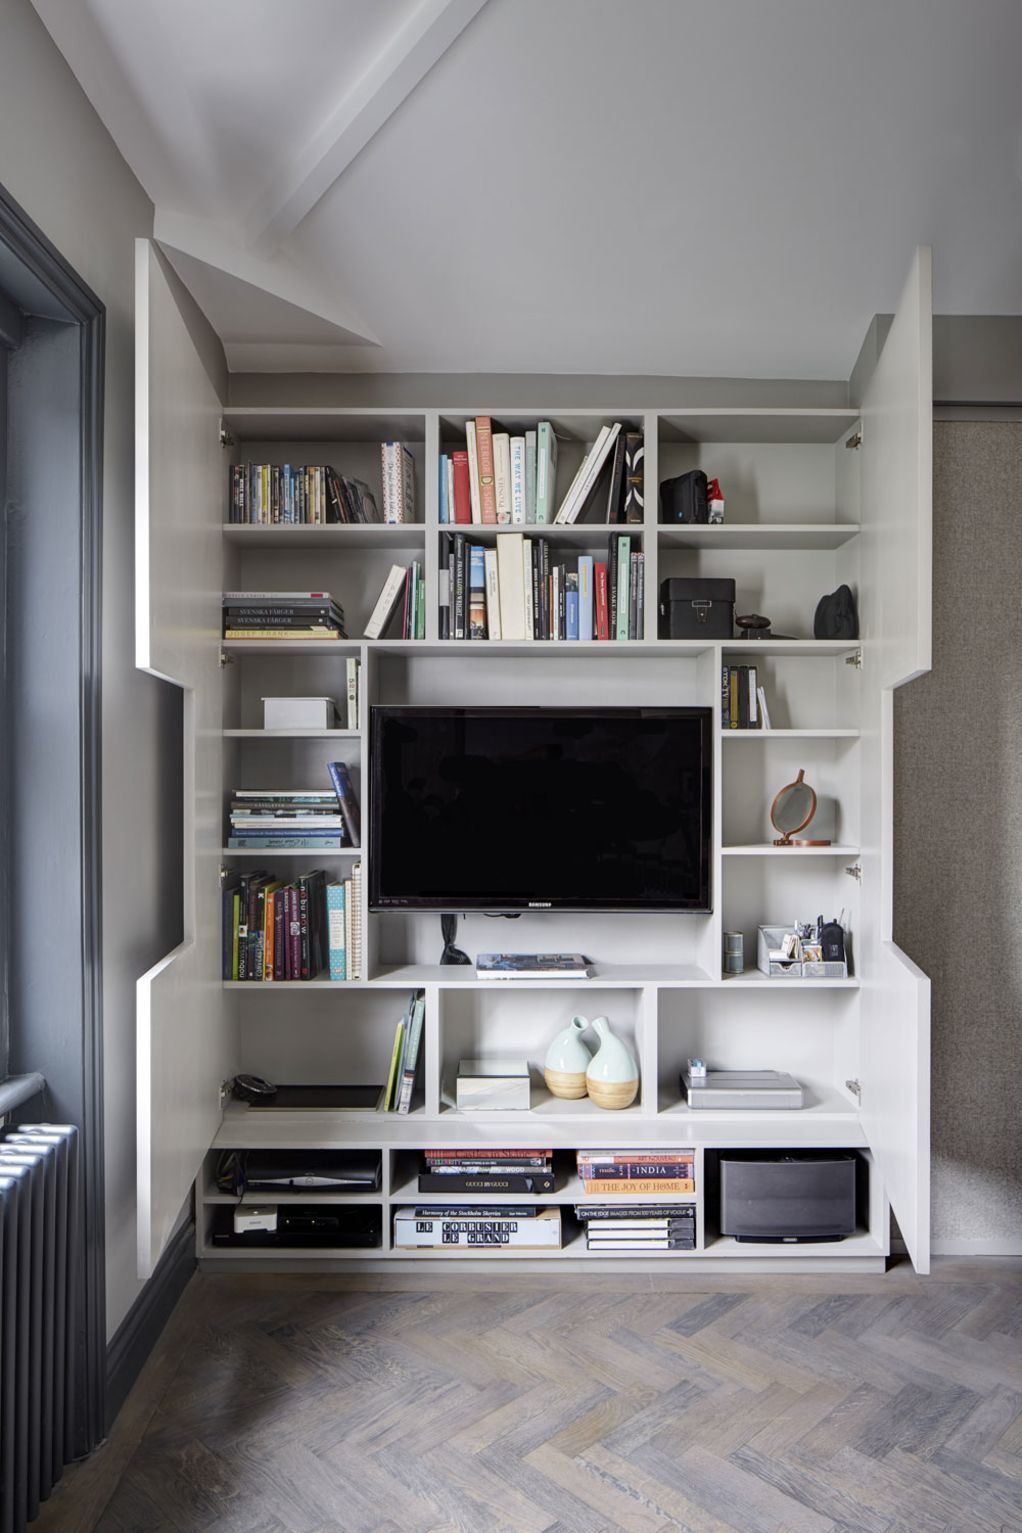 This Stylish London Loft Is Expertly Designed Id E Et Maisons # Bibliotheque Vitree Avec Tv Cachee